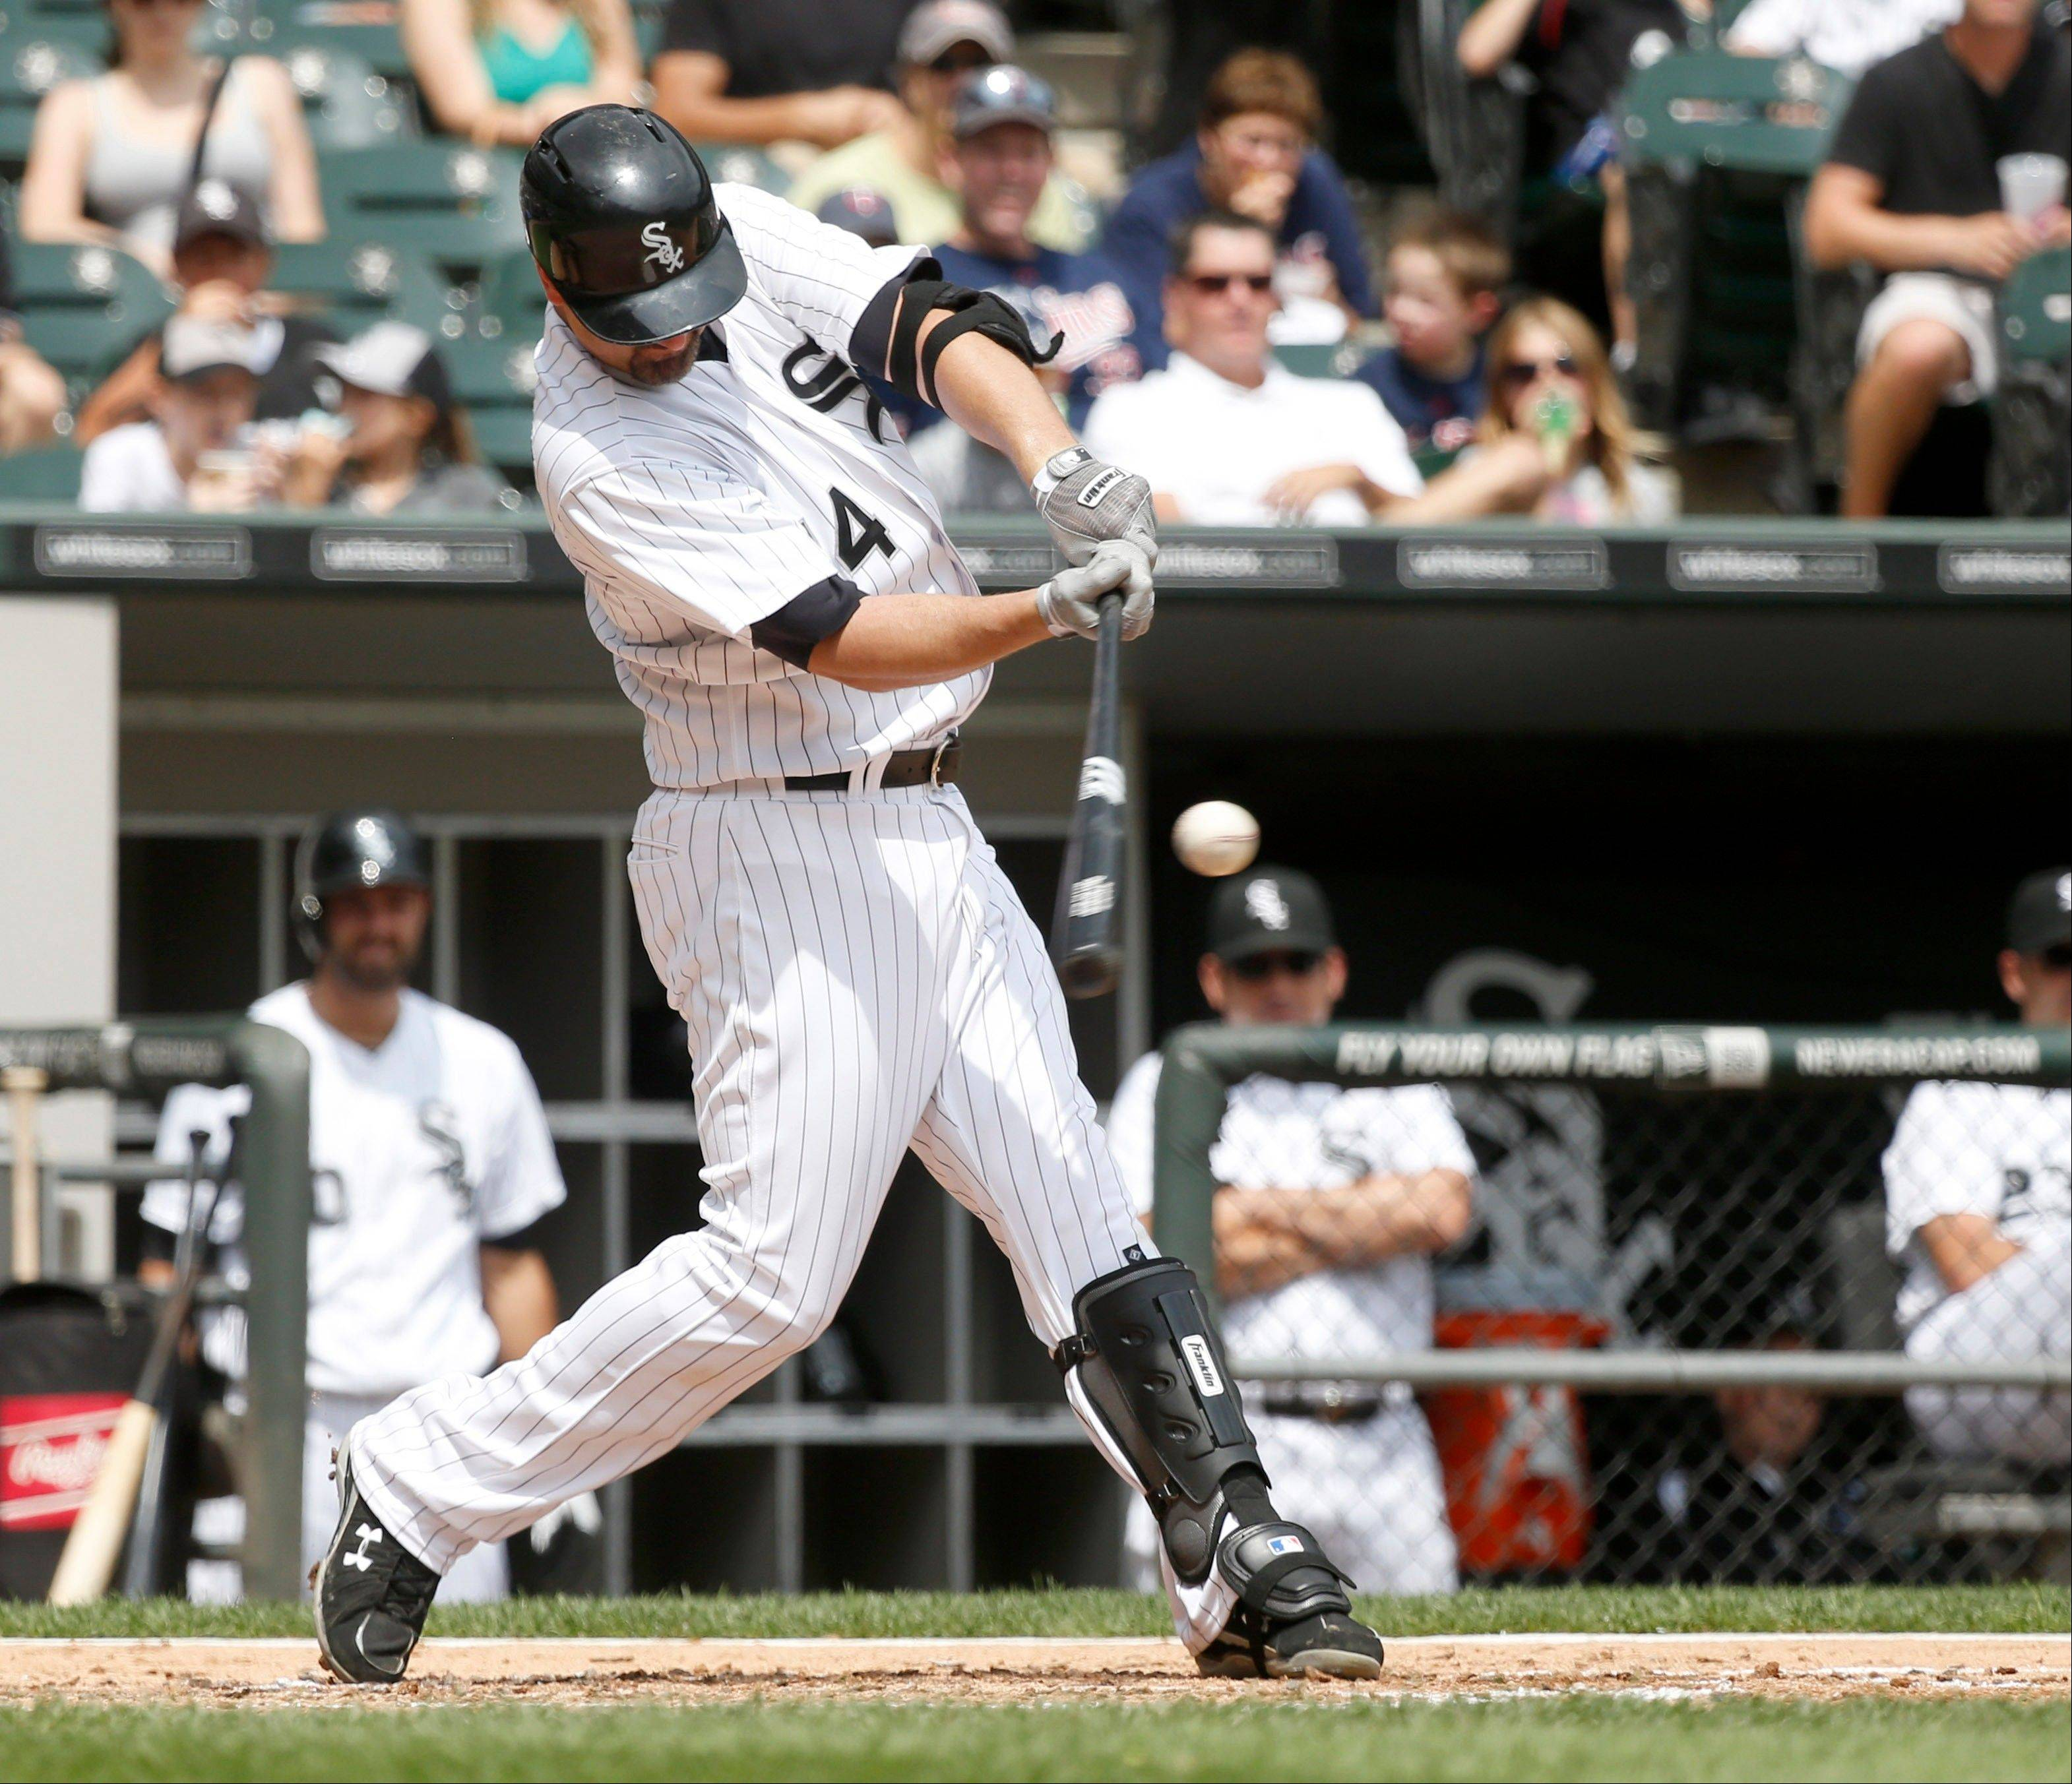 The White Sox� Paul Konerko hits a home run off Minnesota Twins starting pitcher Kyle Gibson during the second inning of a baseball game Friday, Aug. 9, 2013, in Chicago.